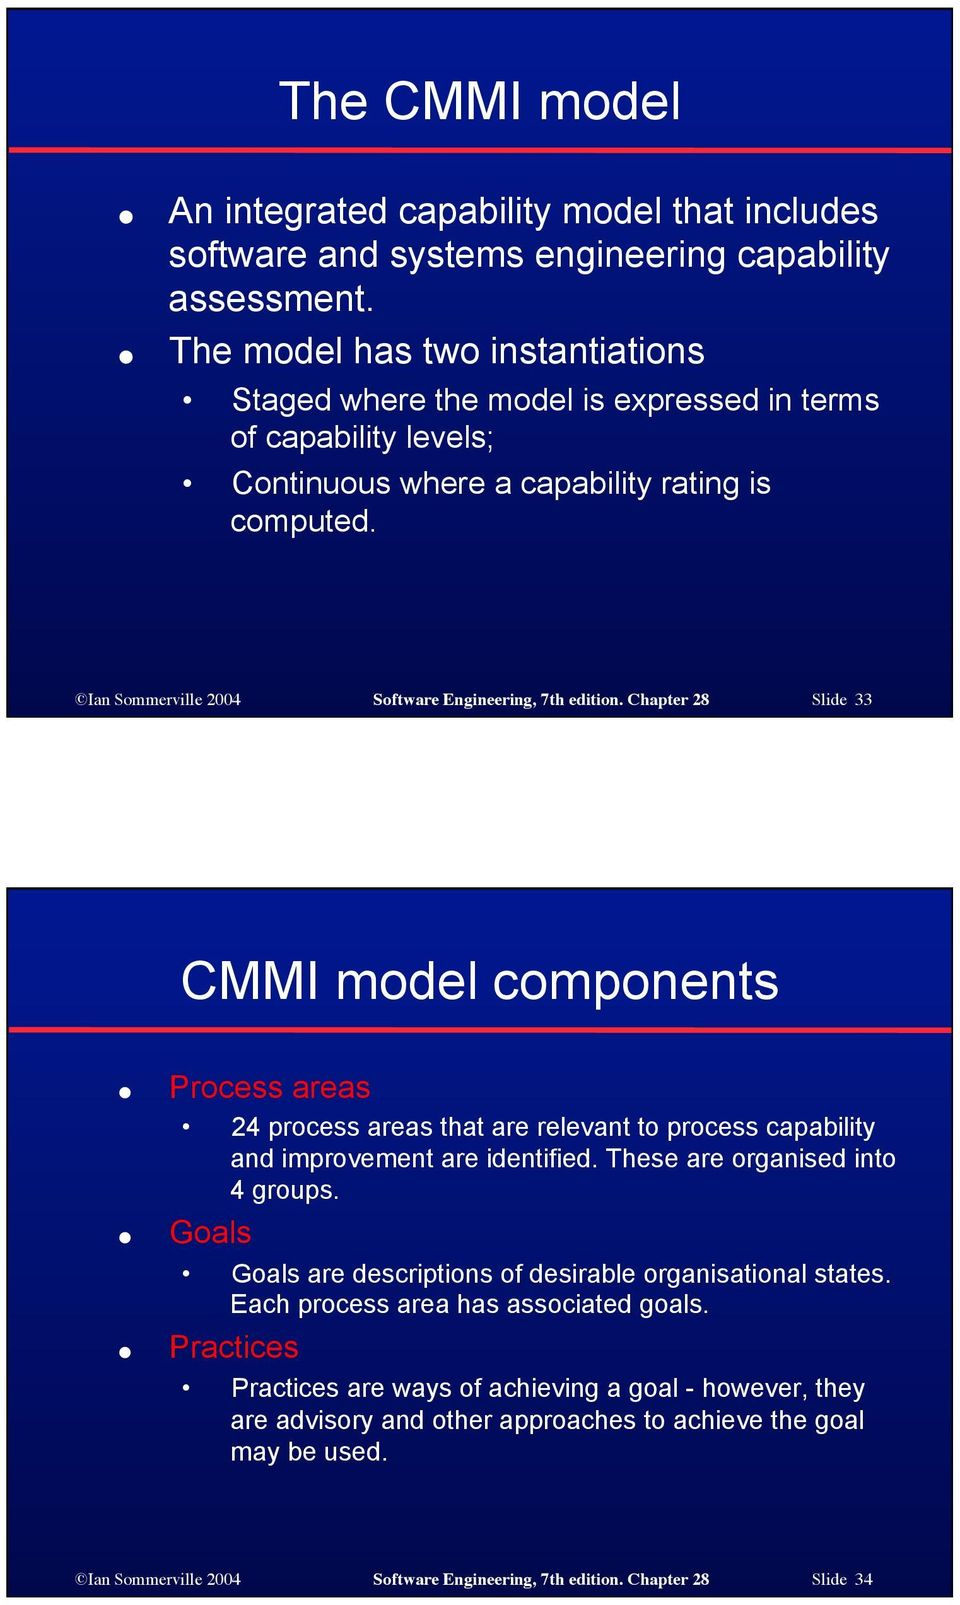 Ian Sommerville 2004 Software Engineering, 7th edition. Chapter 28 Slide 33 CMMI model components Process areas 24 process areas that are relevant to process capability and improvement are identified.